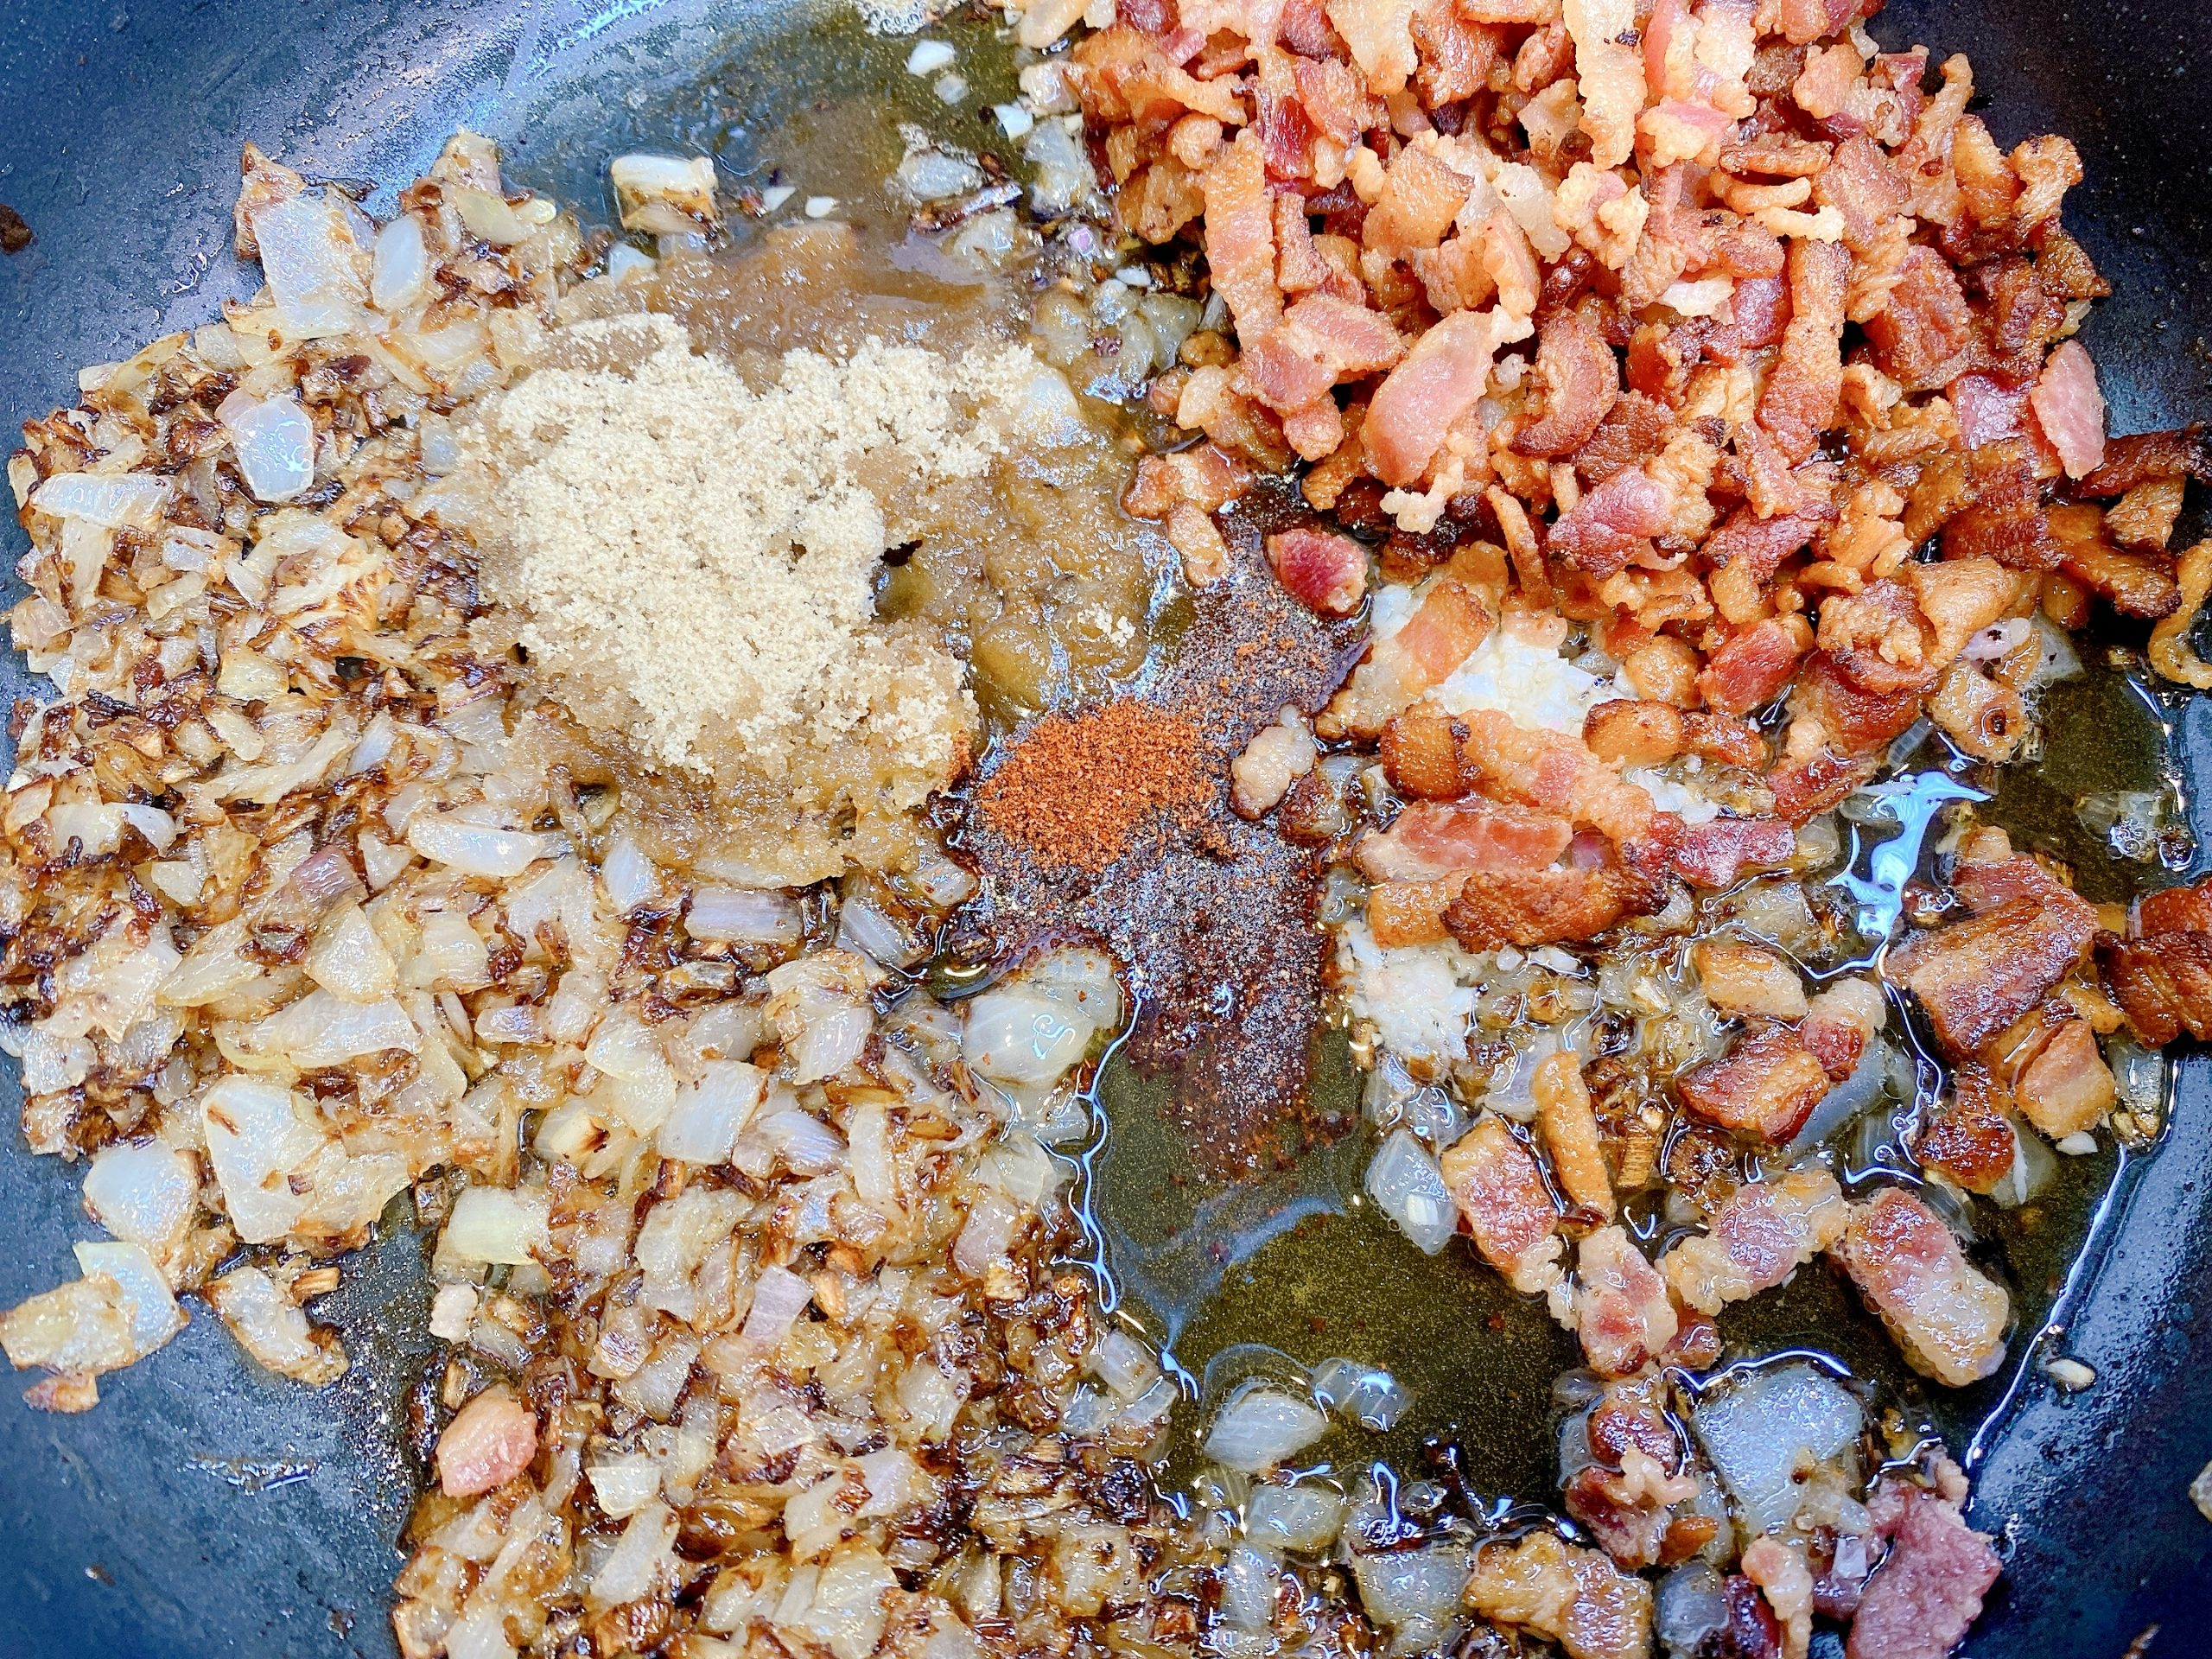 Recipe for Bacon Jam ingredients in frying pan including fried bacon pieces, caramelized onions, brown sugar, maple syrup, cider vinegar and chili powder.